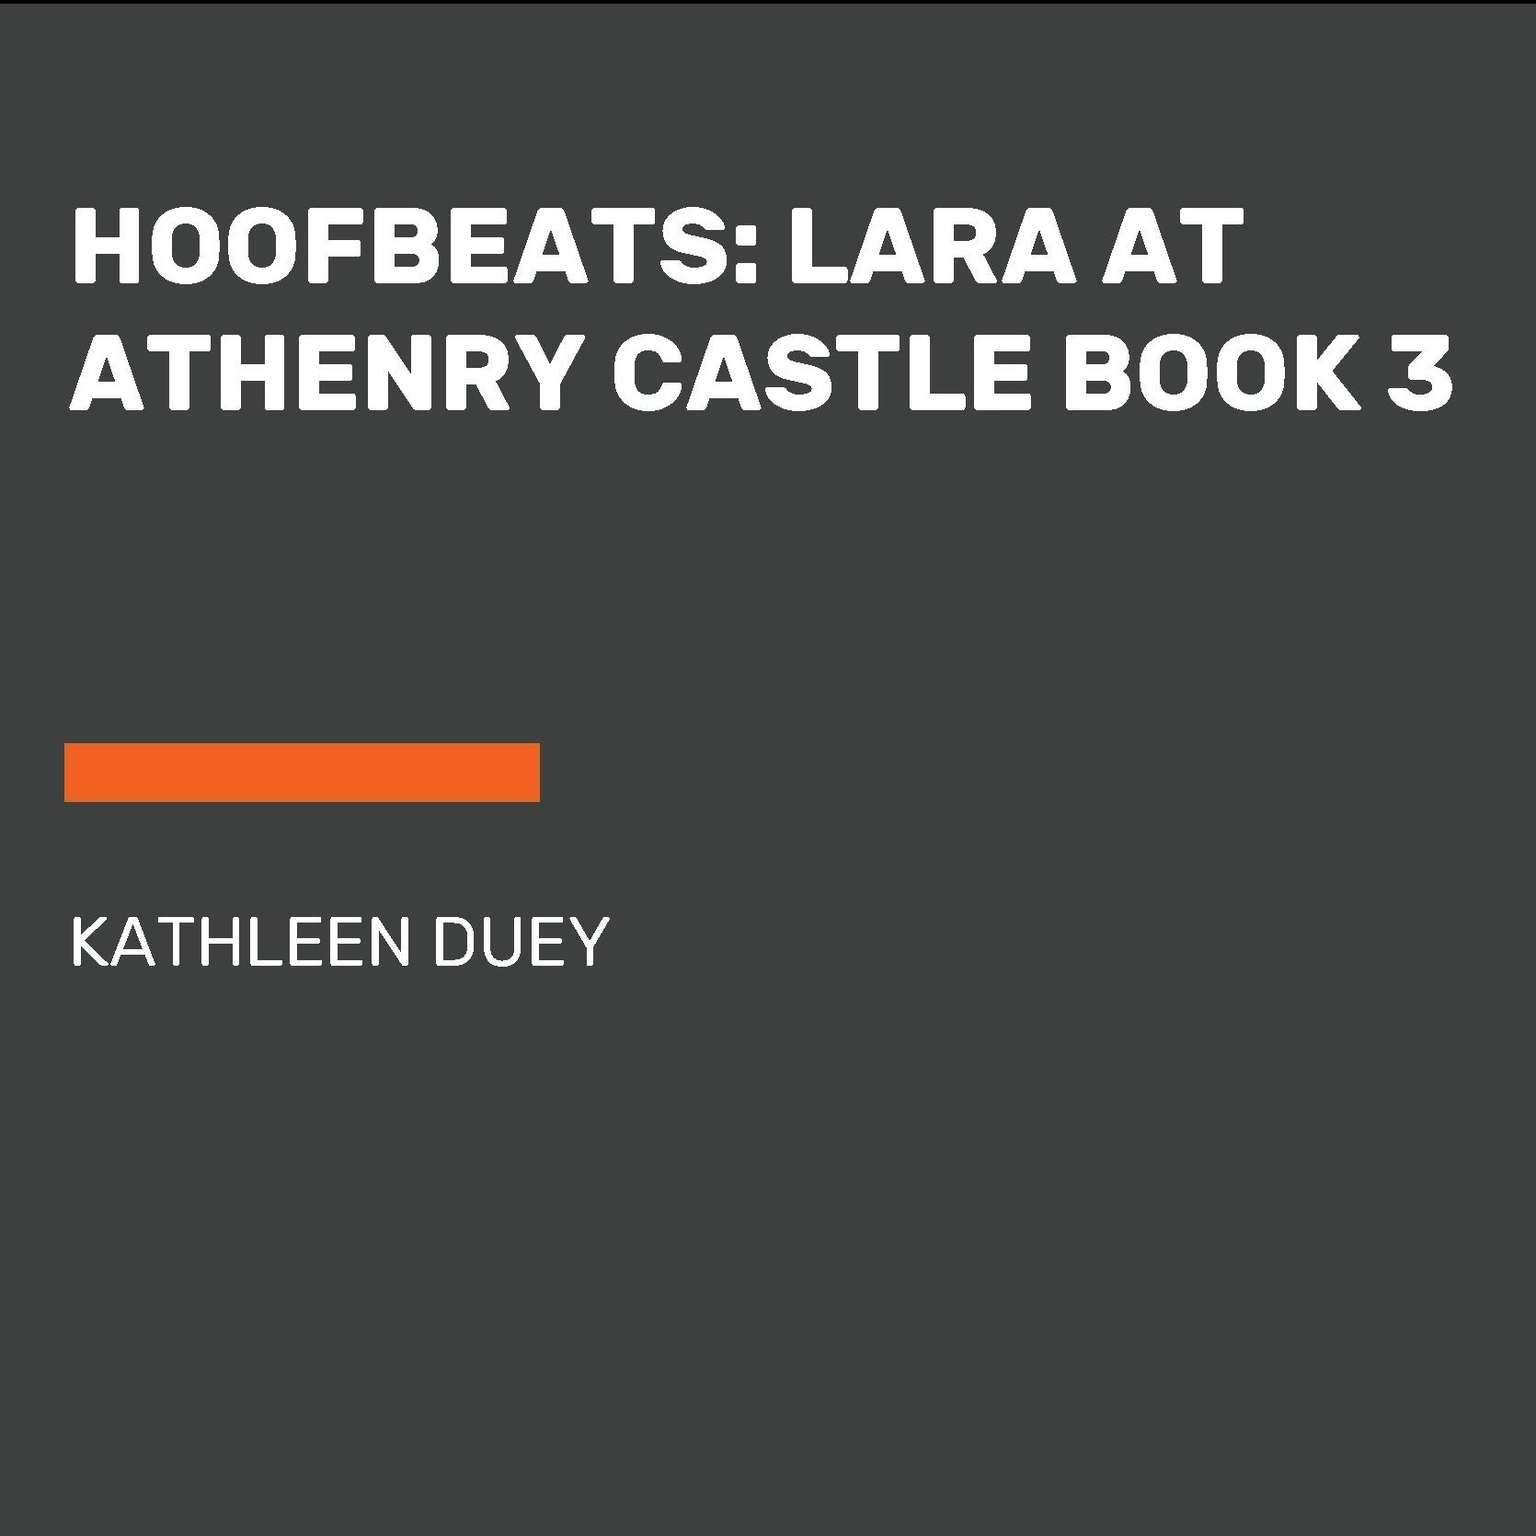 Hoofbeats: Lara at Athenry Castle Book 3 Audiobook, by Kathleen Duey